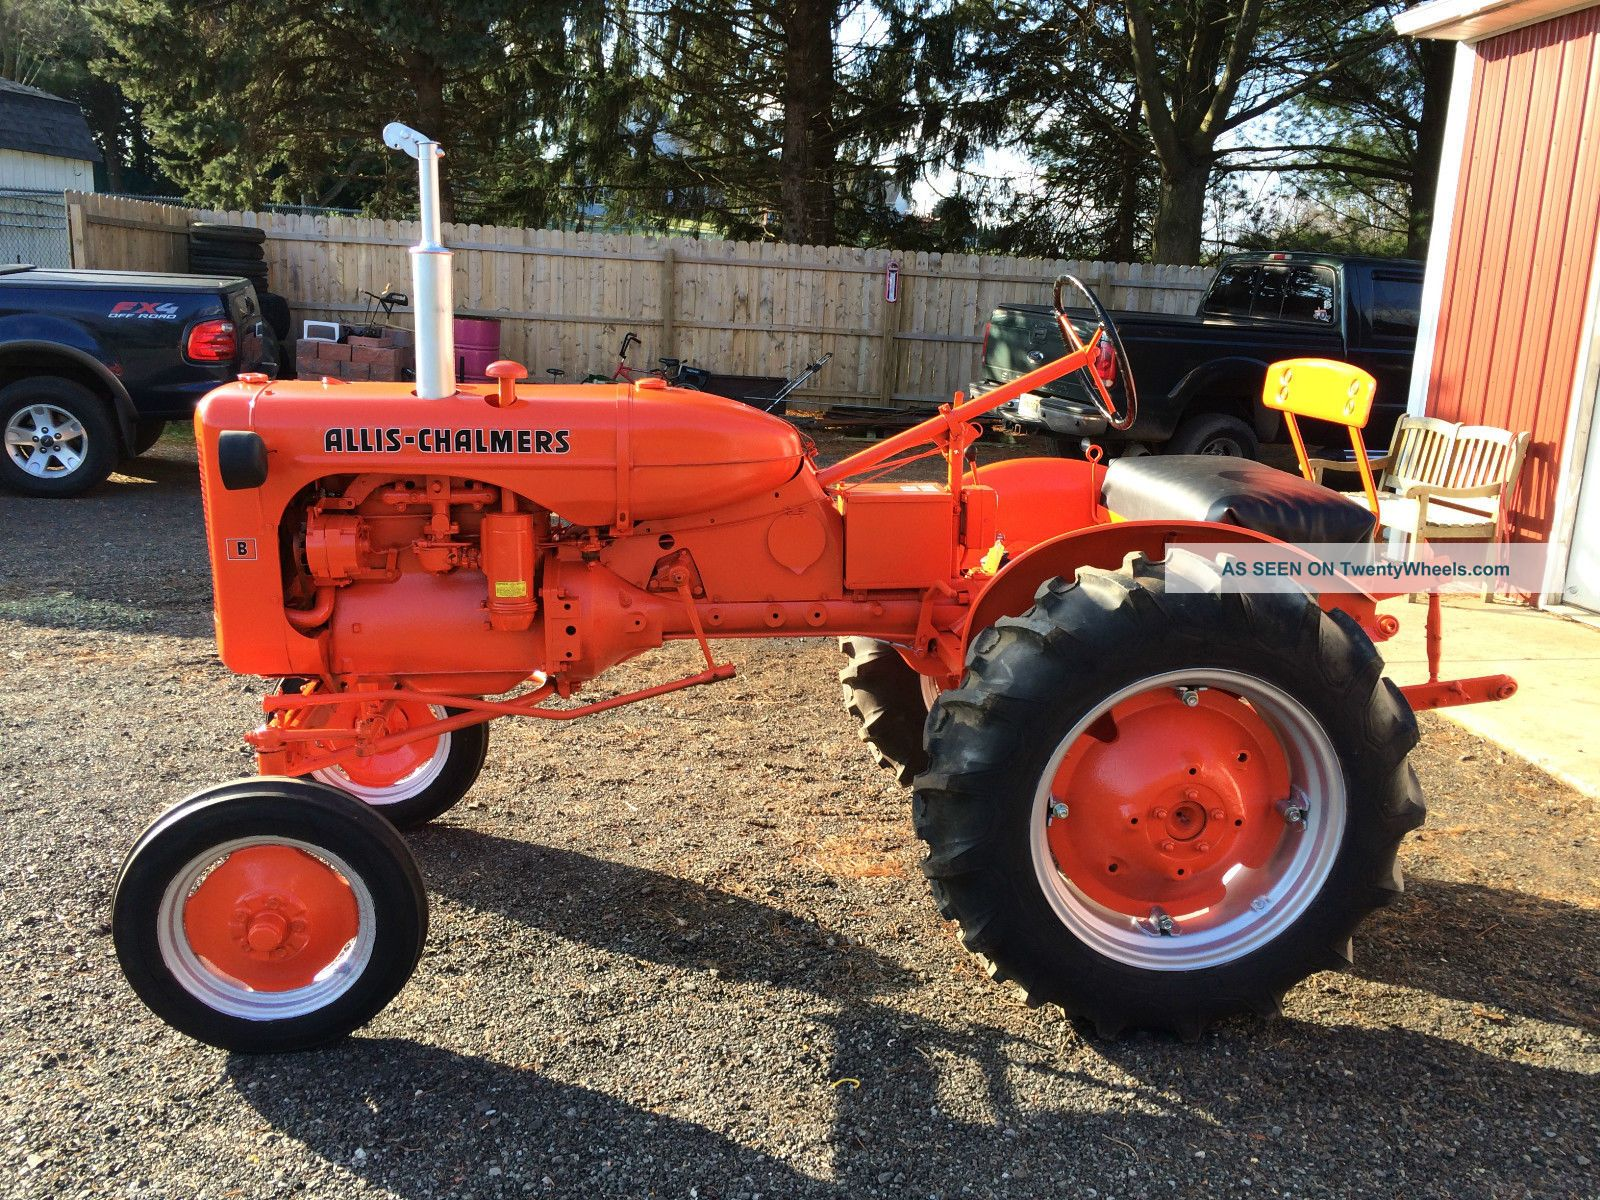 Farmall Super A Tractor Engine Spec together with Electrical Wiring Diagram 1954 Dodge in addition Search additionally Pioneer Chion Series 12 Subwoofer 4 Ohm Wiring Diagram additionally Wiring Harness For Oliver 1955. on oliver 1955 tractor wiring diagram